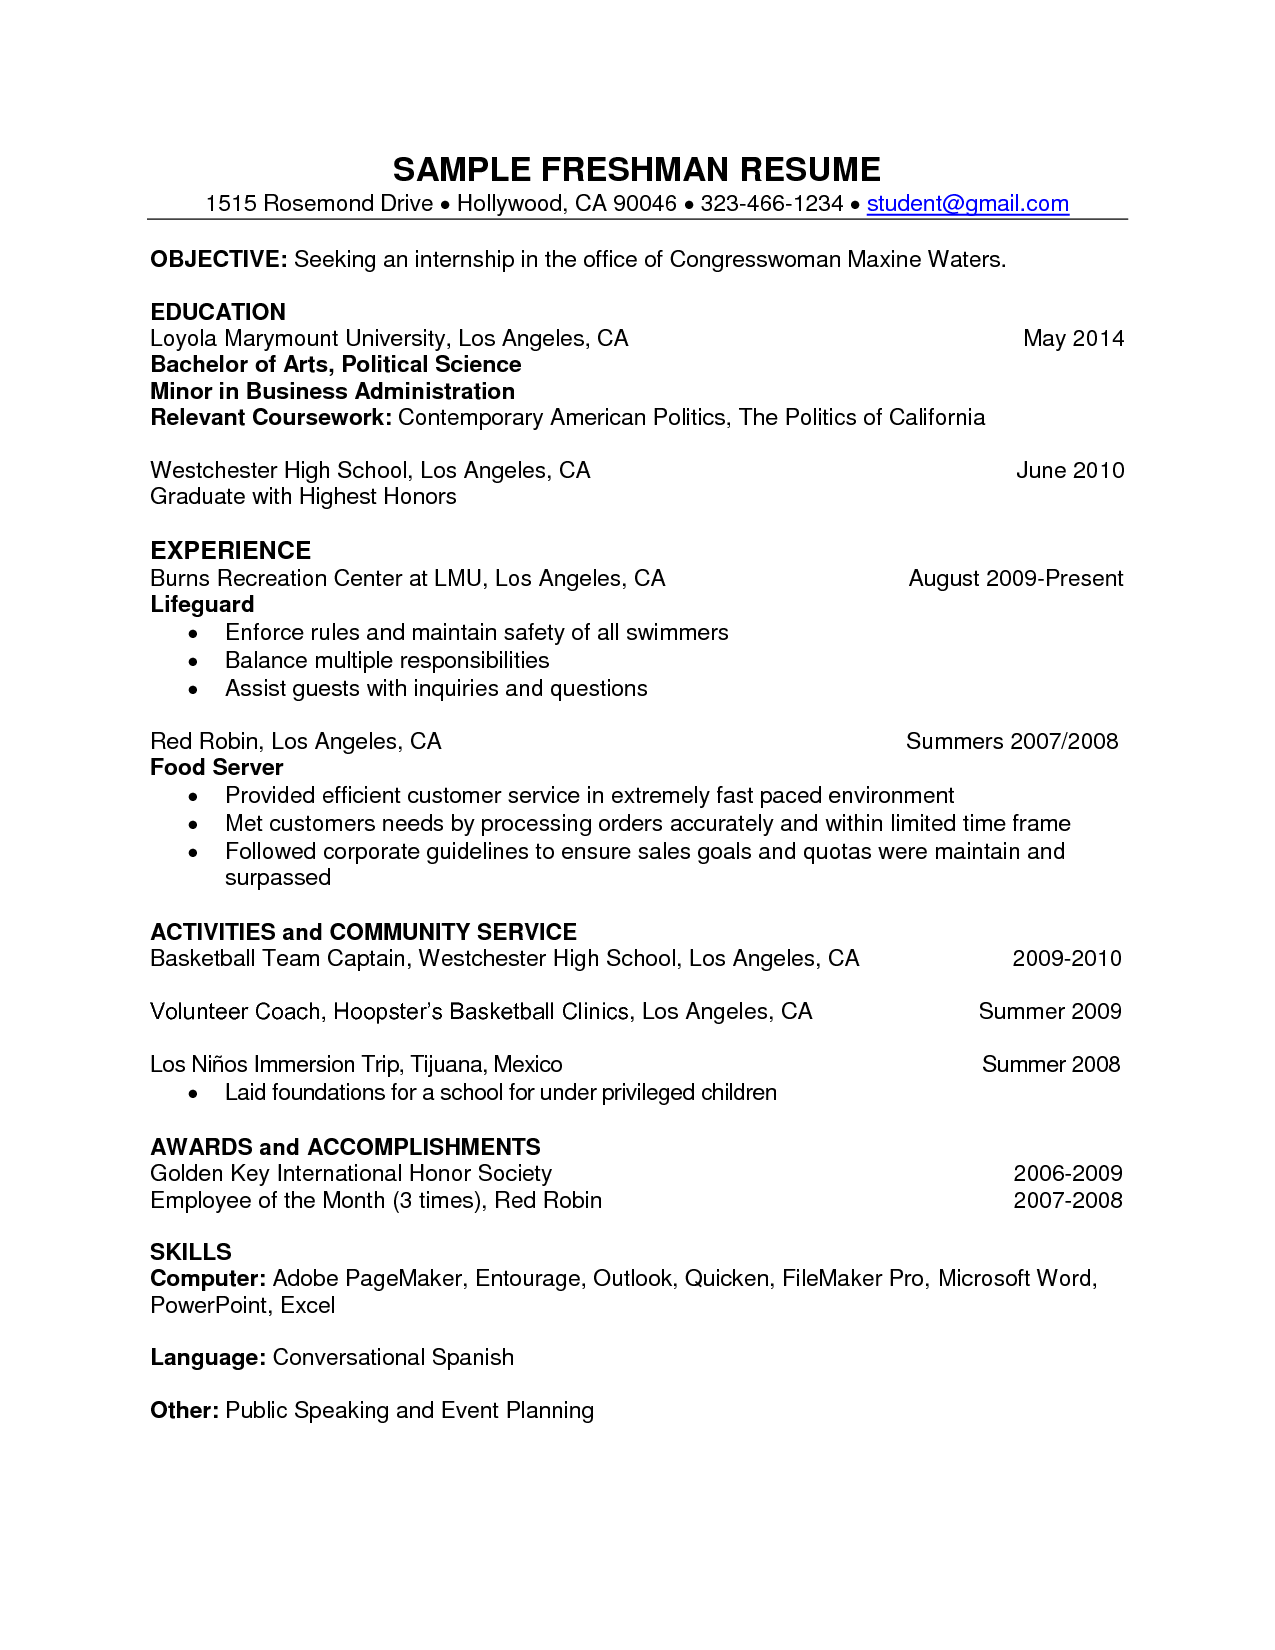 Internship Resume Template Templates For Freshers Httpwwwresumeformatsresume